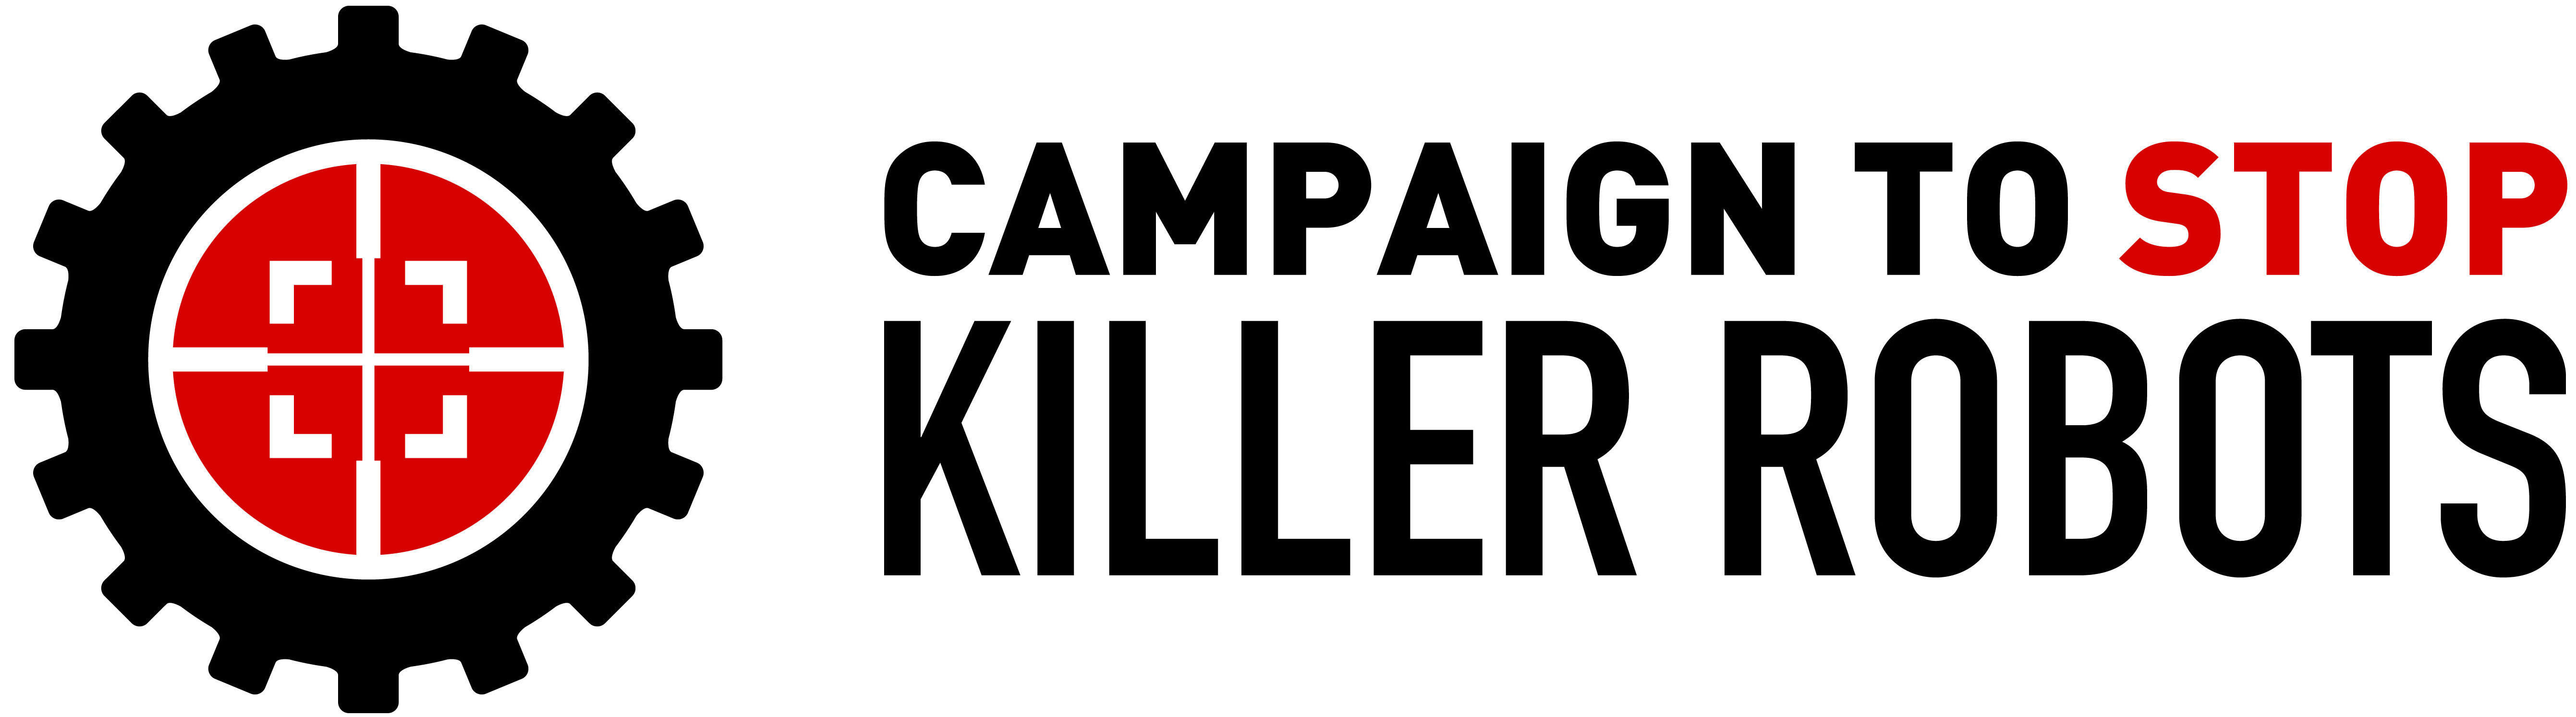 killerbots-logo-full